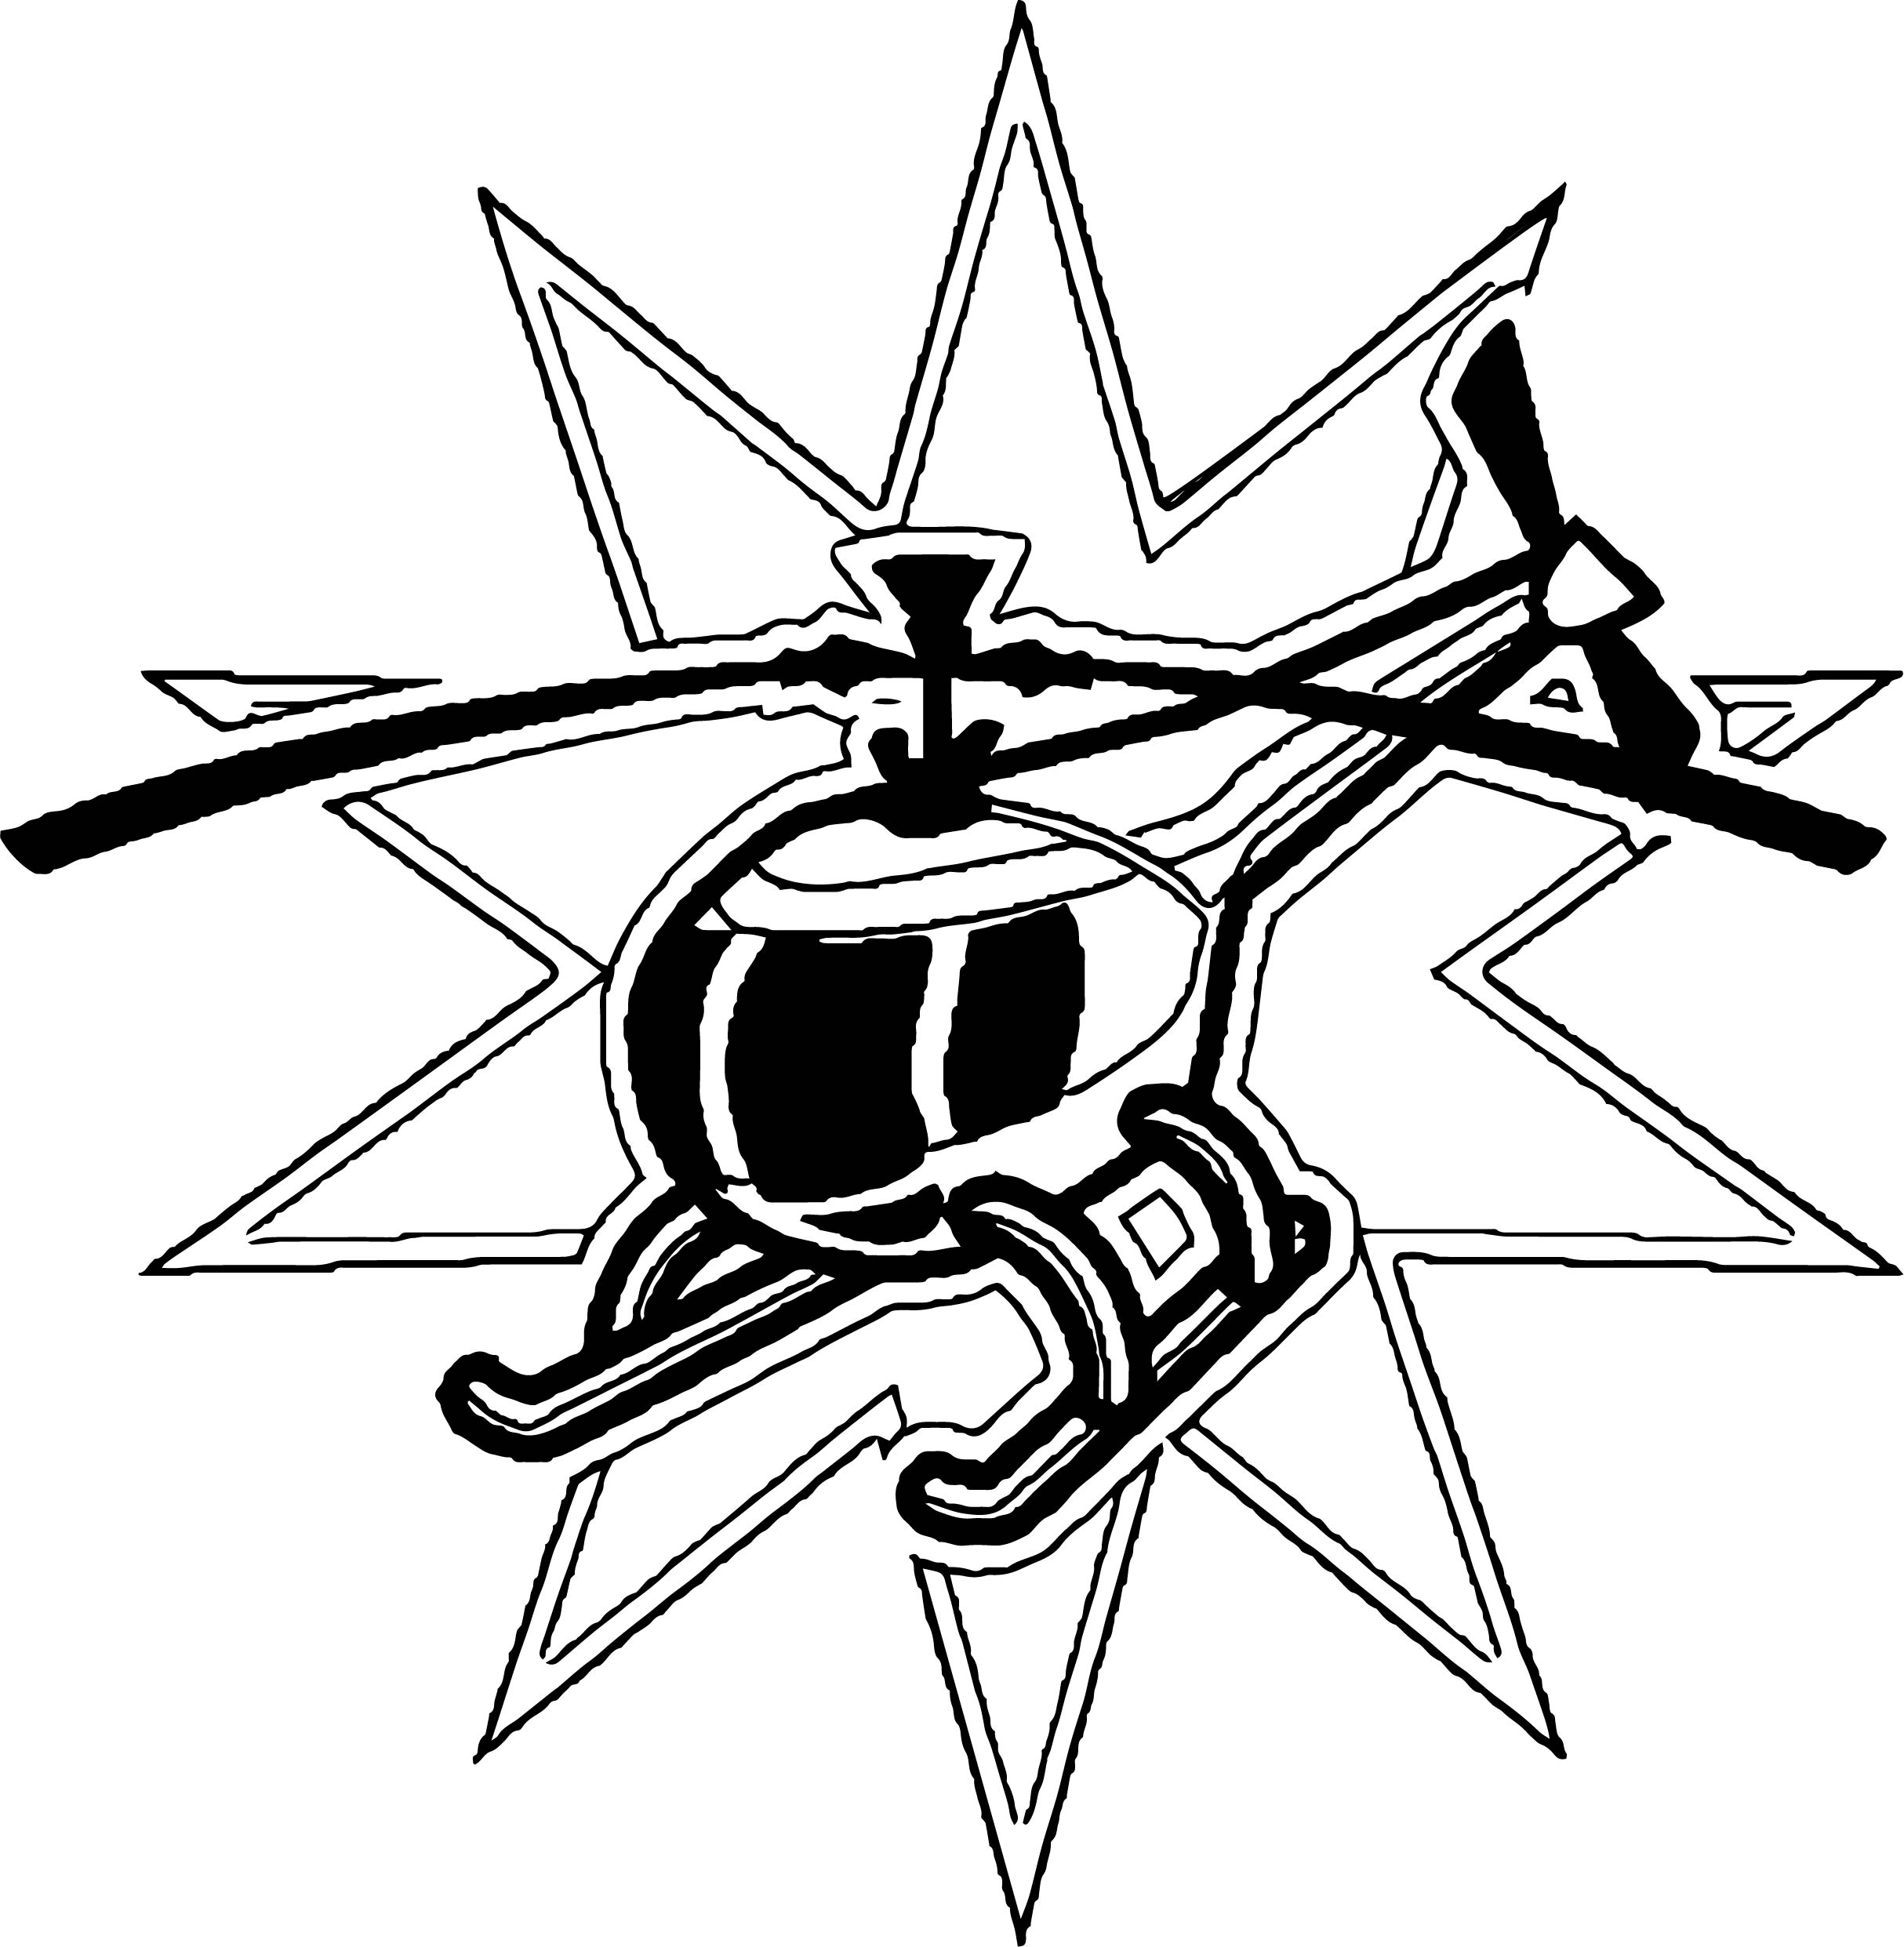 Helicopter Coloring Page 14